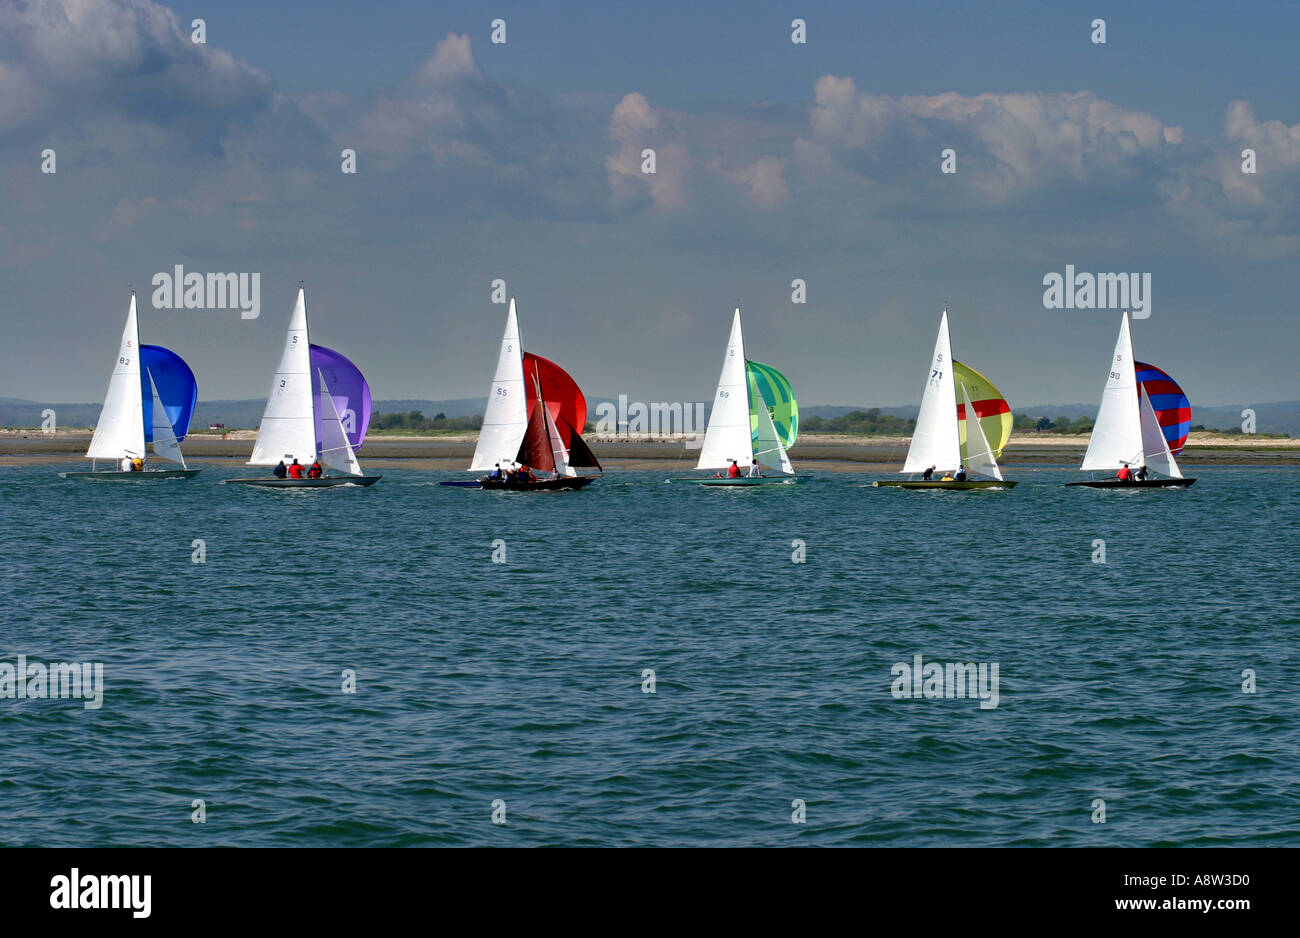 six-sailing-boats-with-colourful-sails-in-a-line-chichester-sussex-A8W3D0.jpg